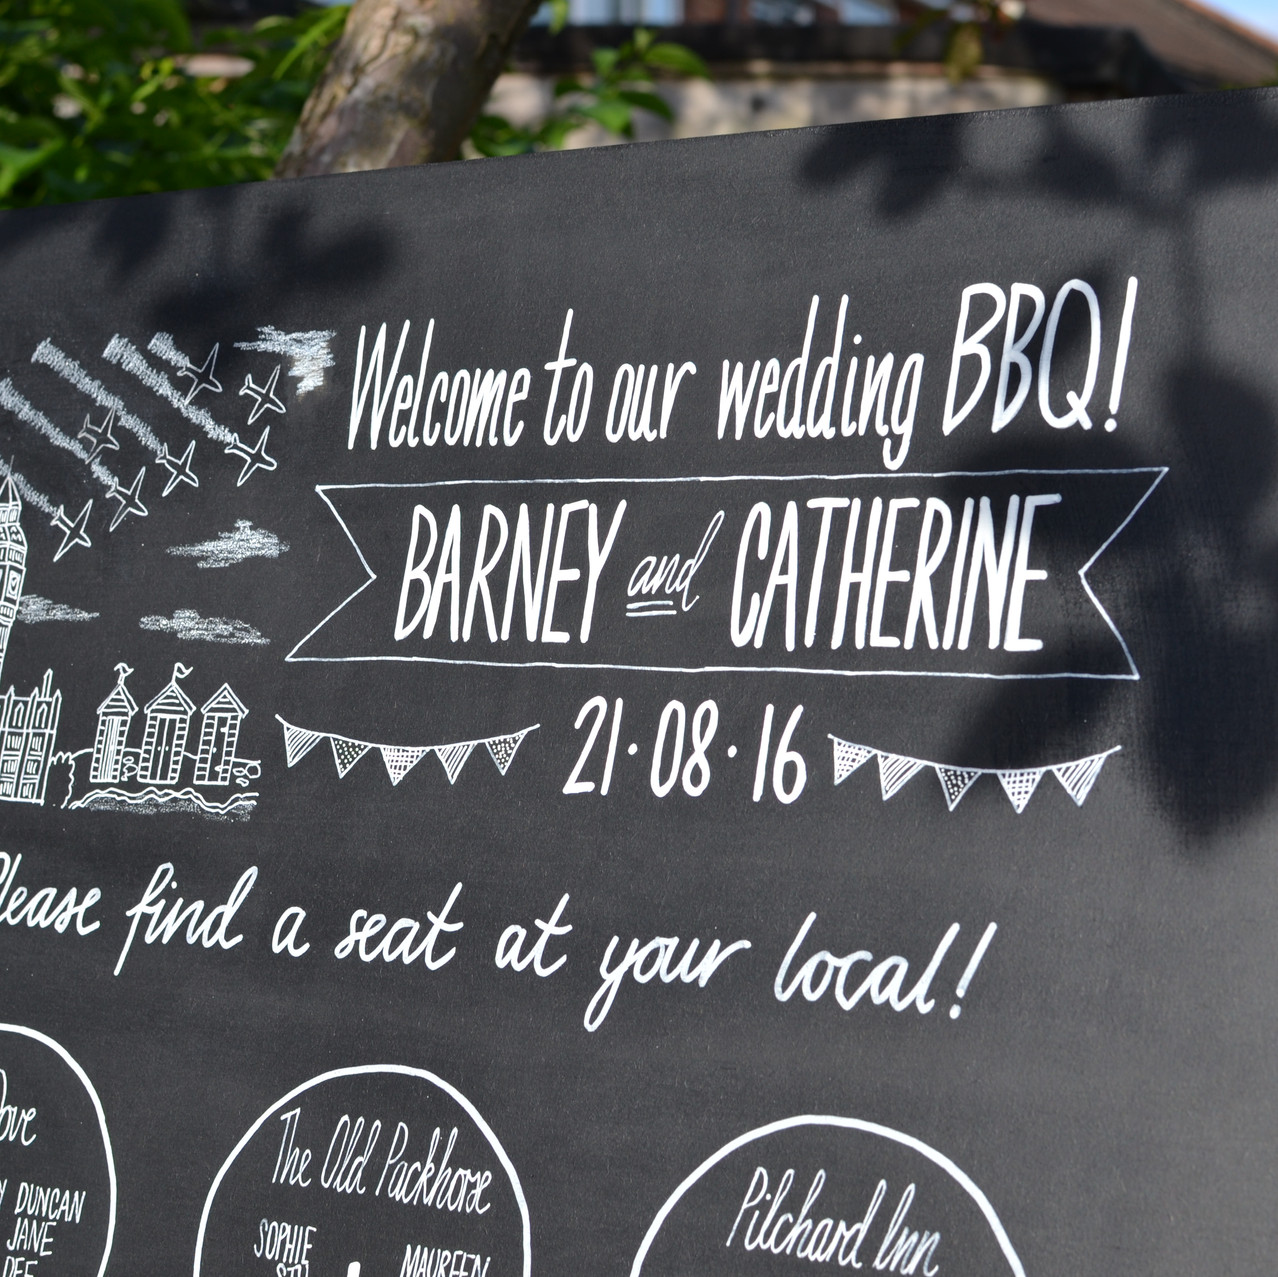 Barney & Catherine Table Plan - August 2016 (19)